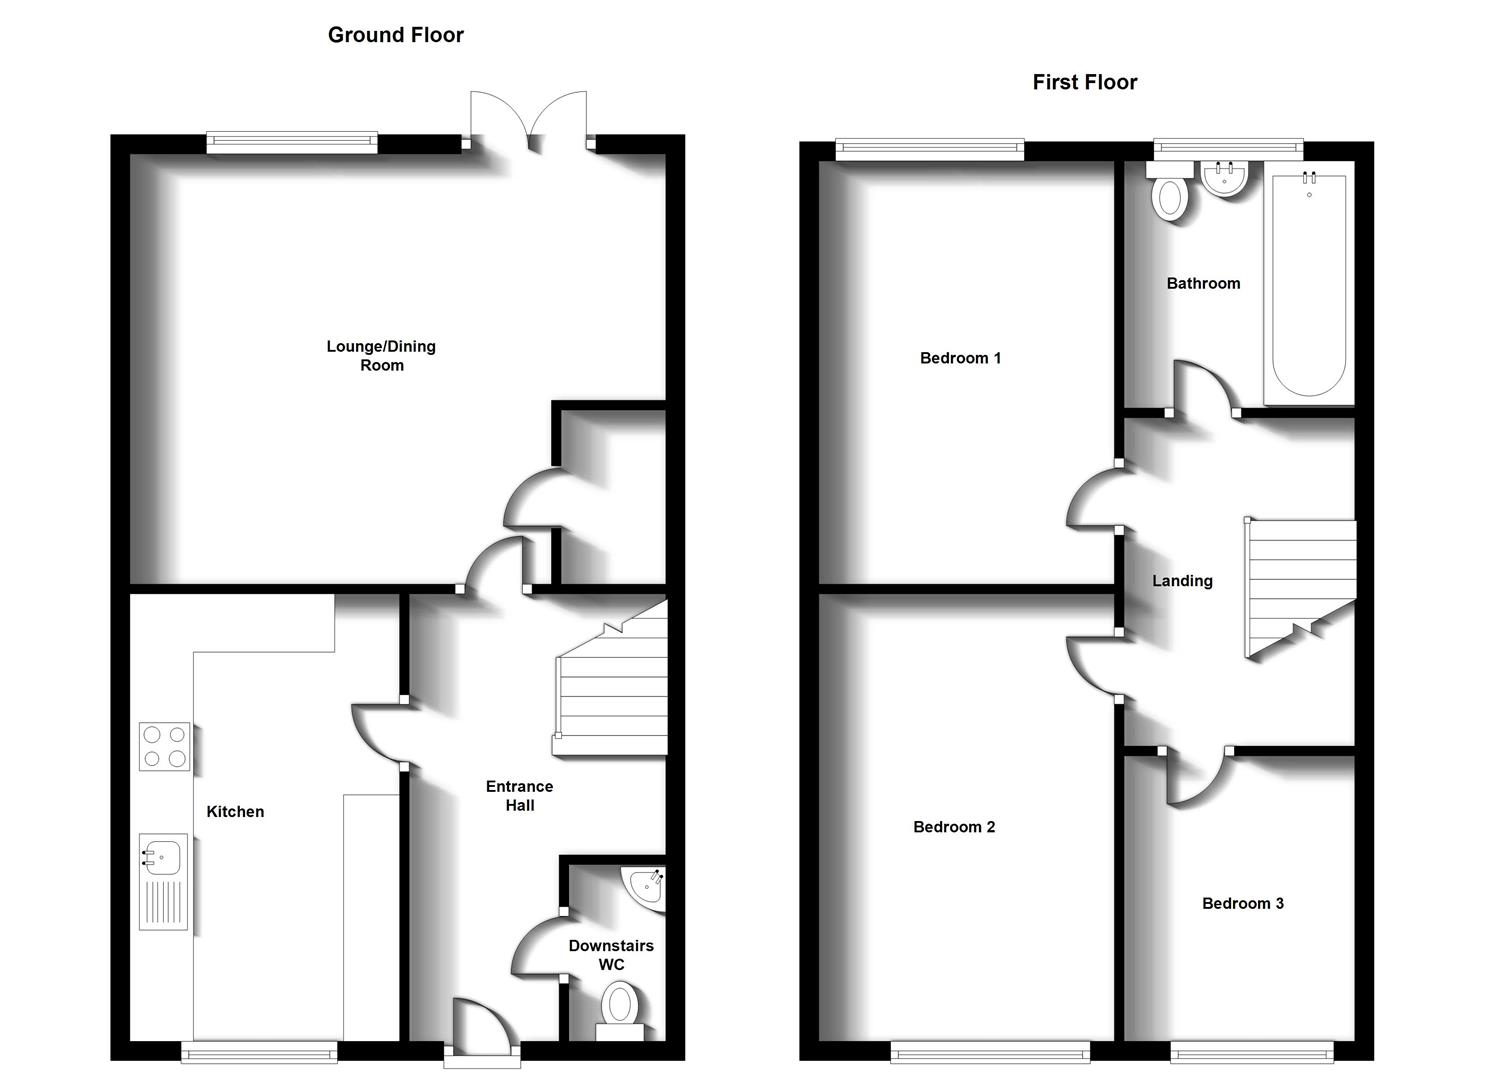 Floorplans For Callier Close, Cawston, Rugby